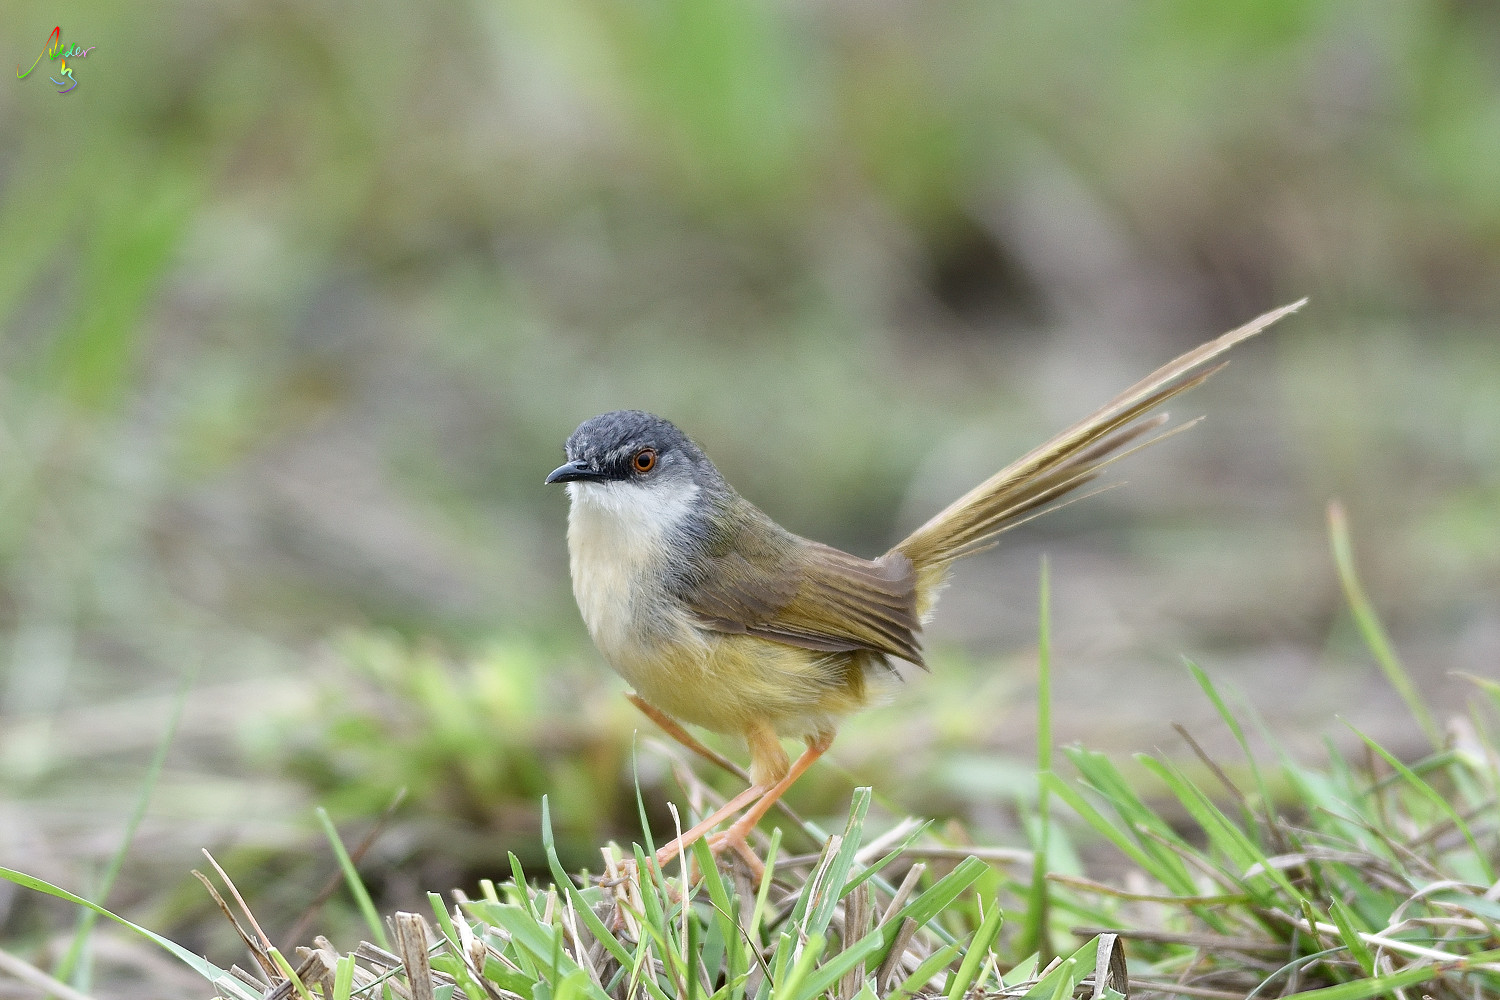 Yellow-bellied_Prinia_3492